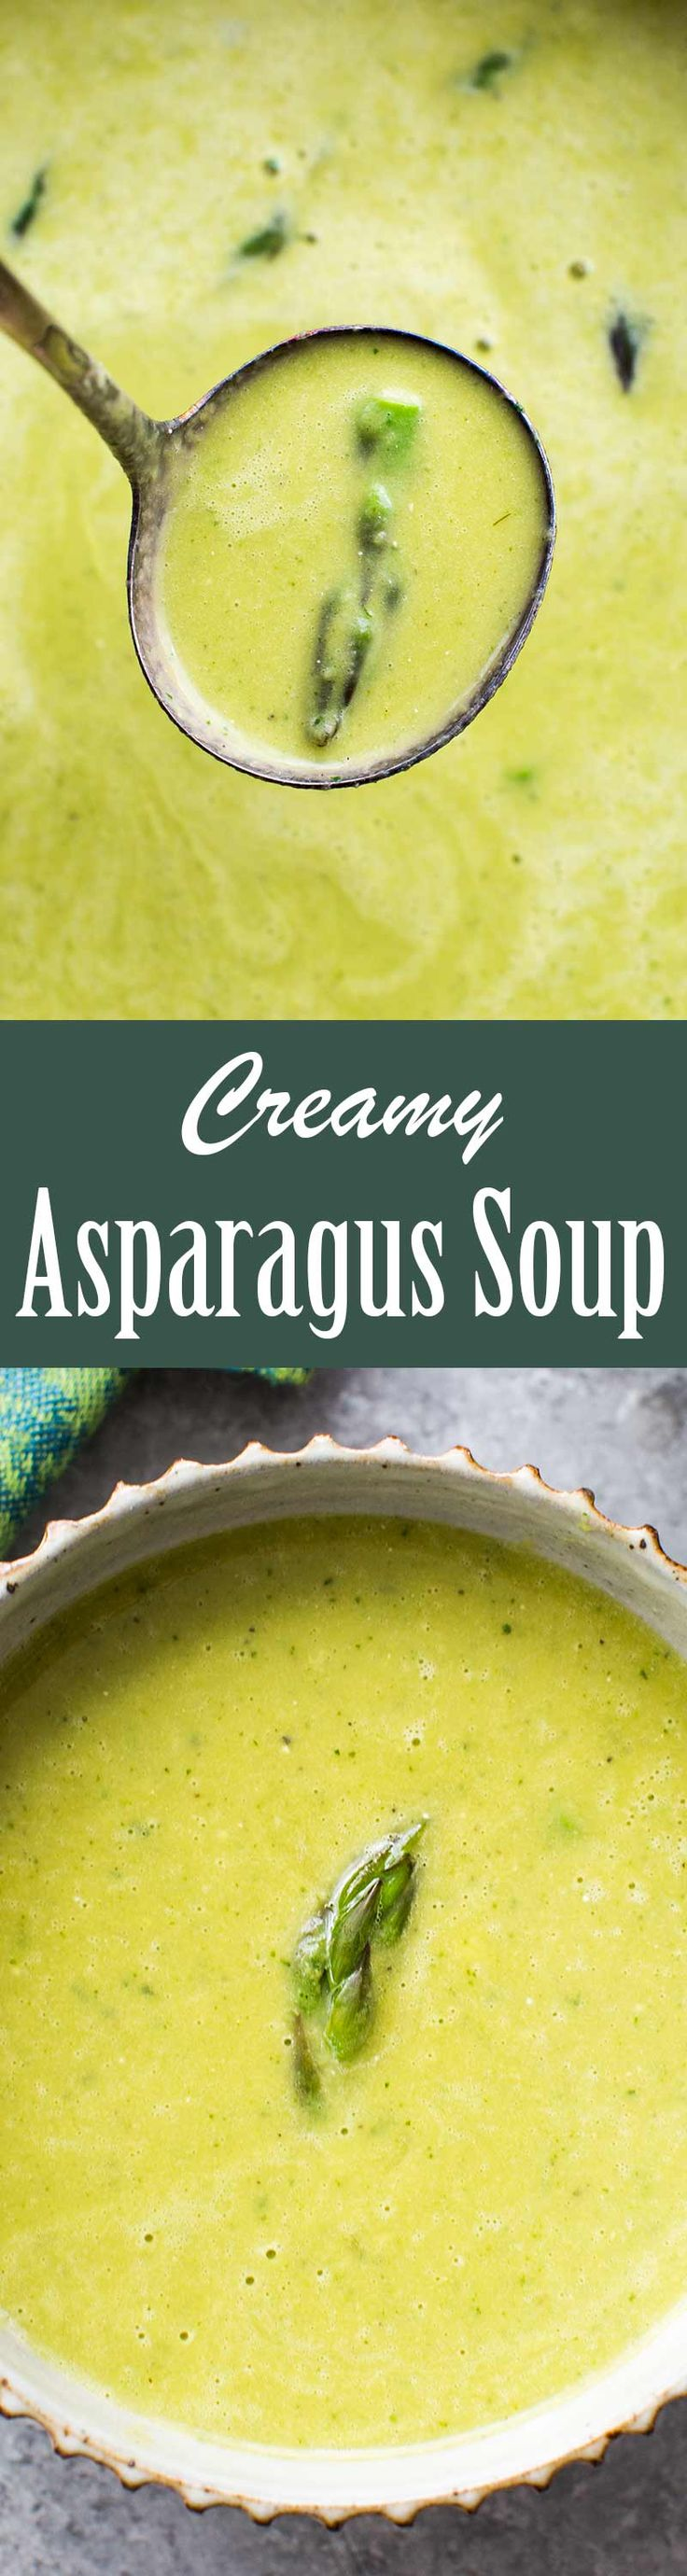 Creamy Asparagus Soup! Quick and EASY asparagus soup in a base of stock, cream, and onion, seasoned with thyme and dry vermouth. Creamy and delicious! Gluten-free too.